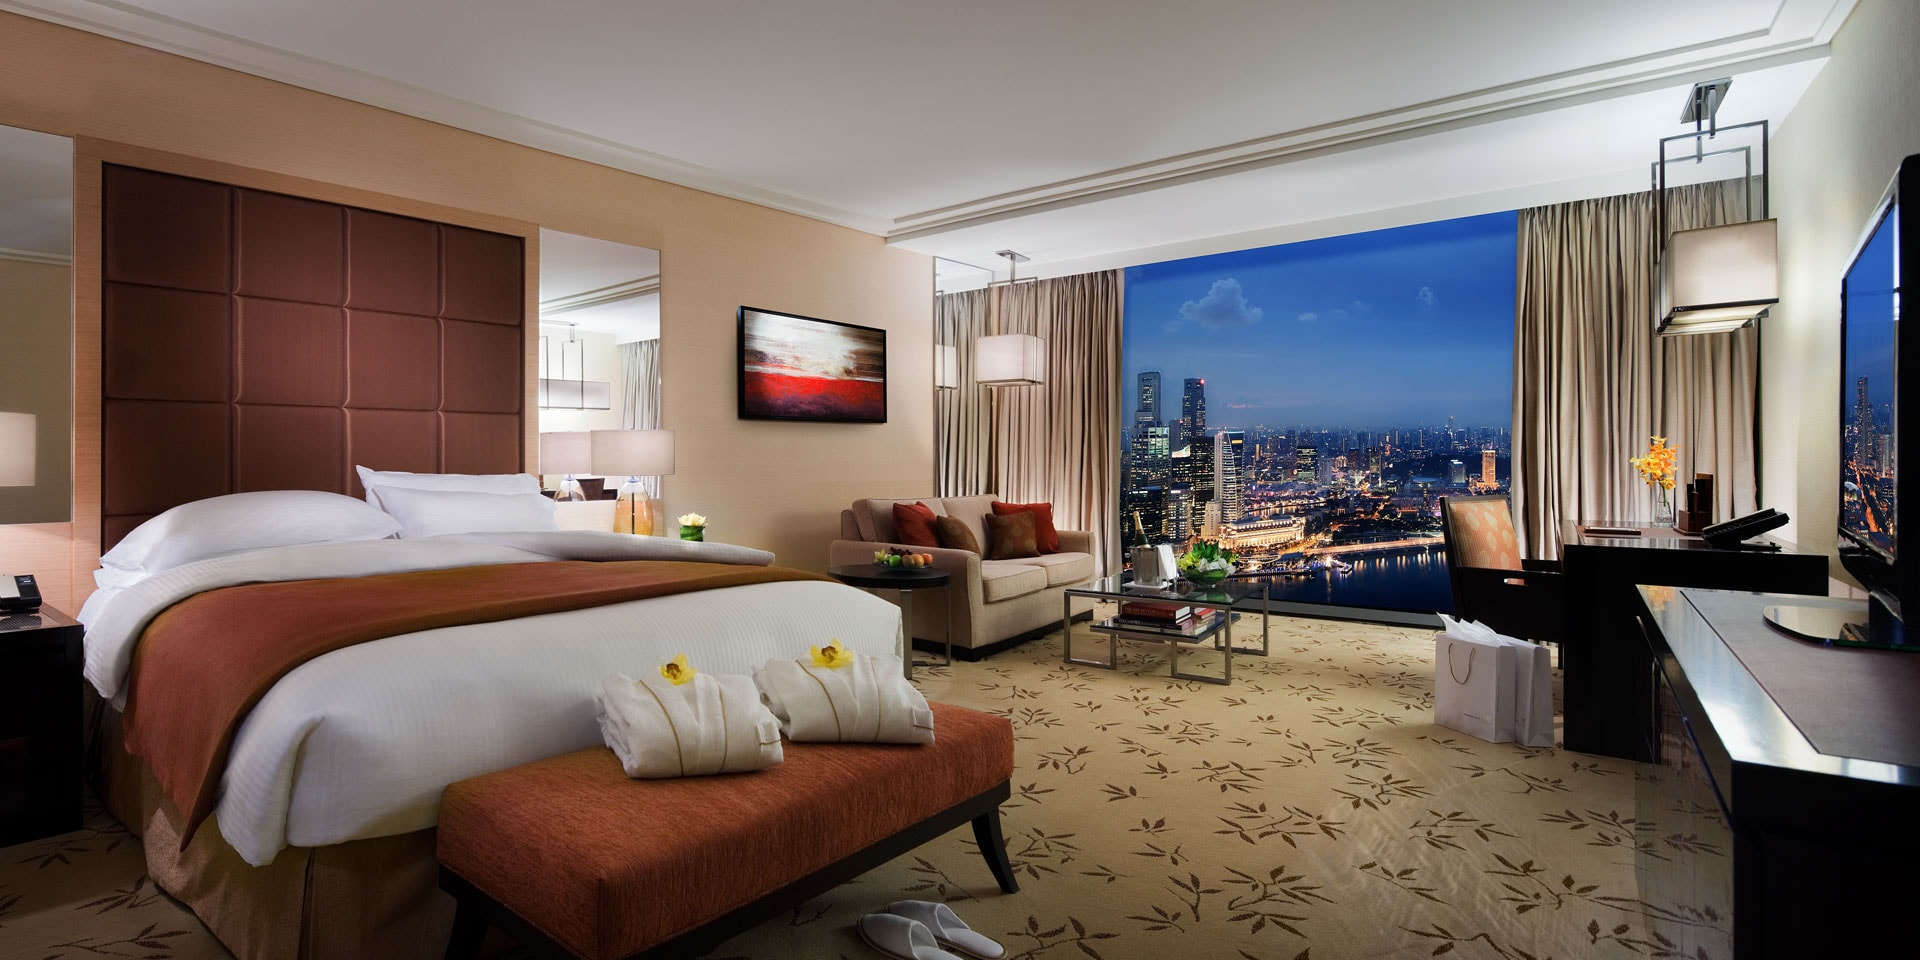 Club Room at Marina Bay Sands with King Bed and City View. The Club Room in Marina Bay Sands   Singapore Hotel